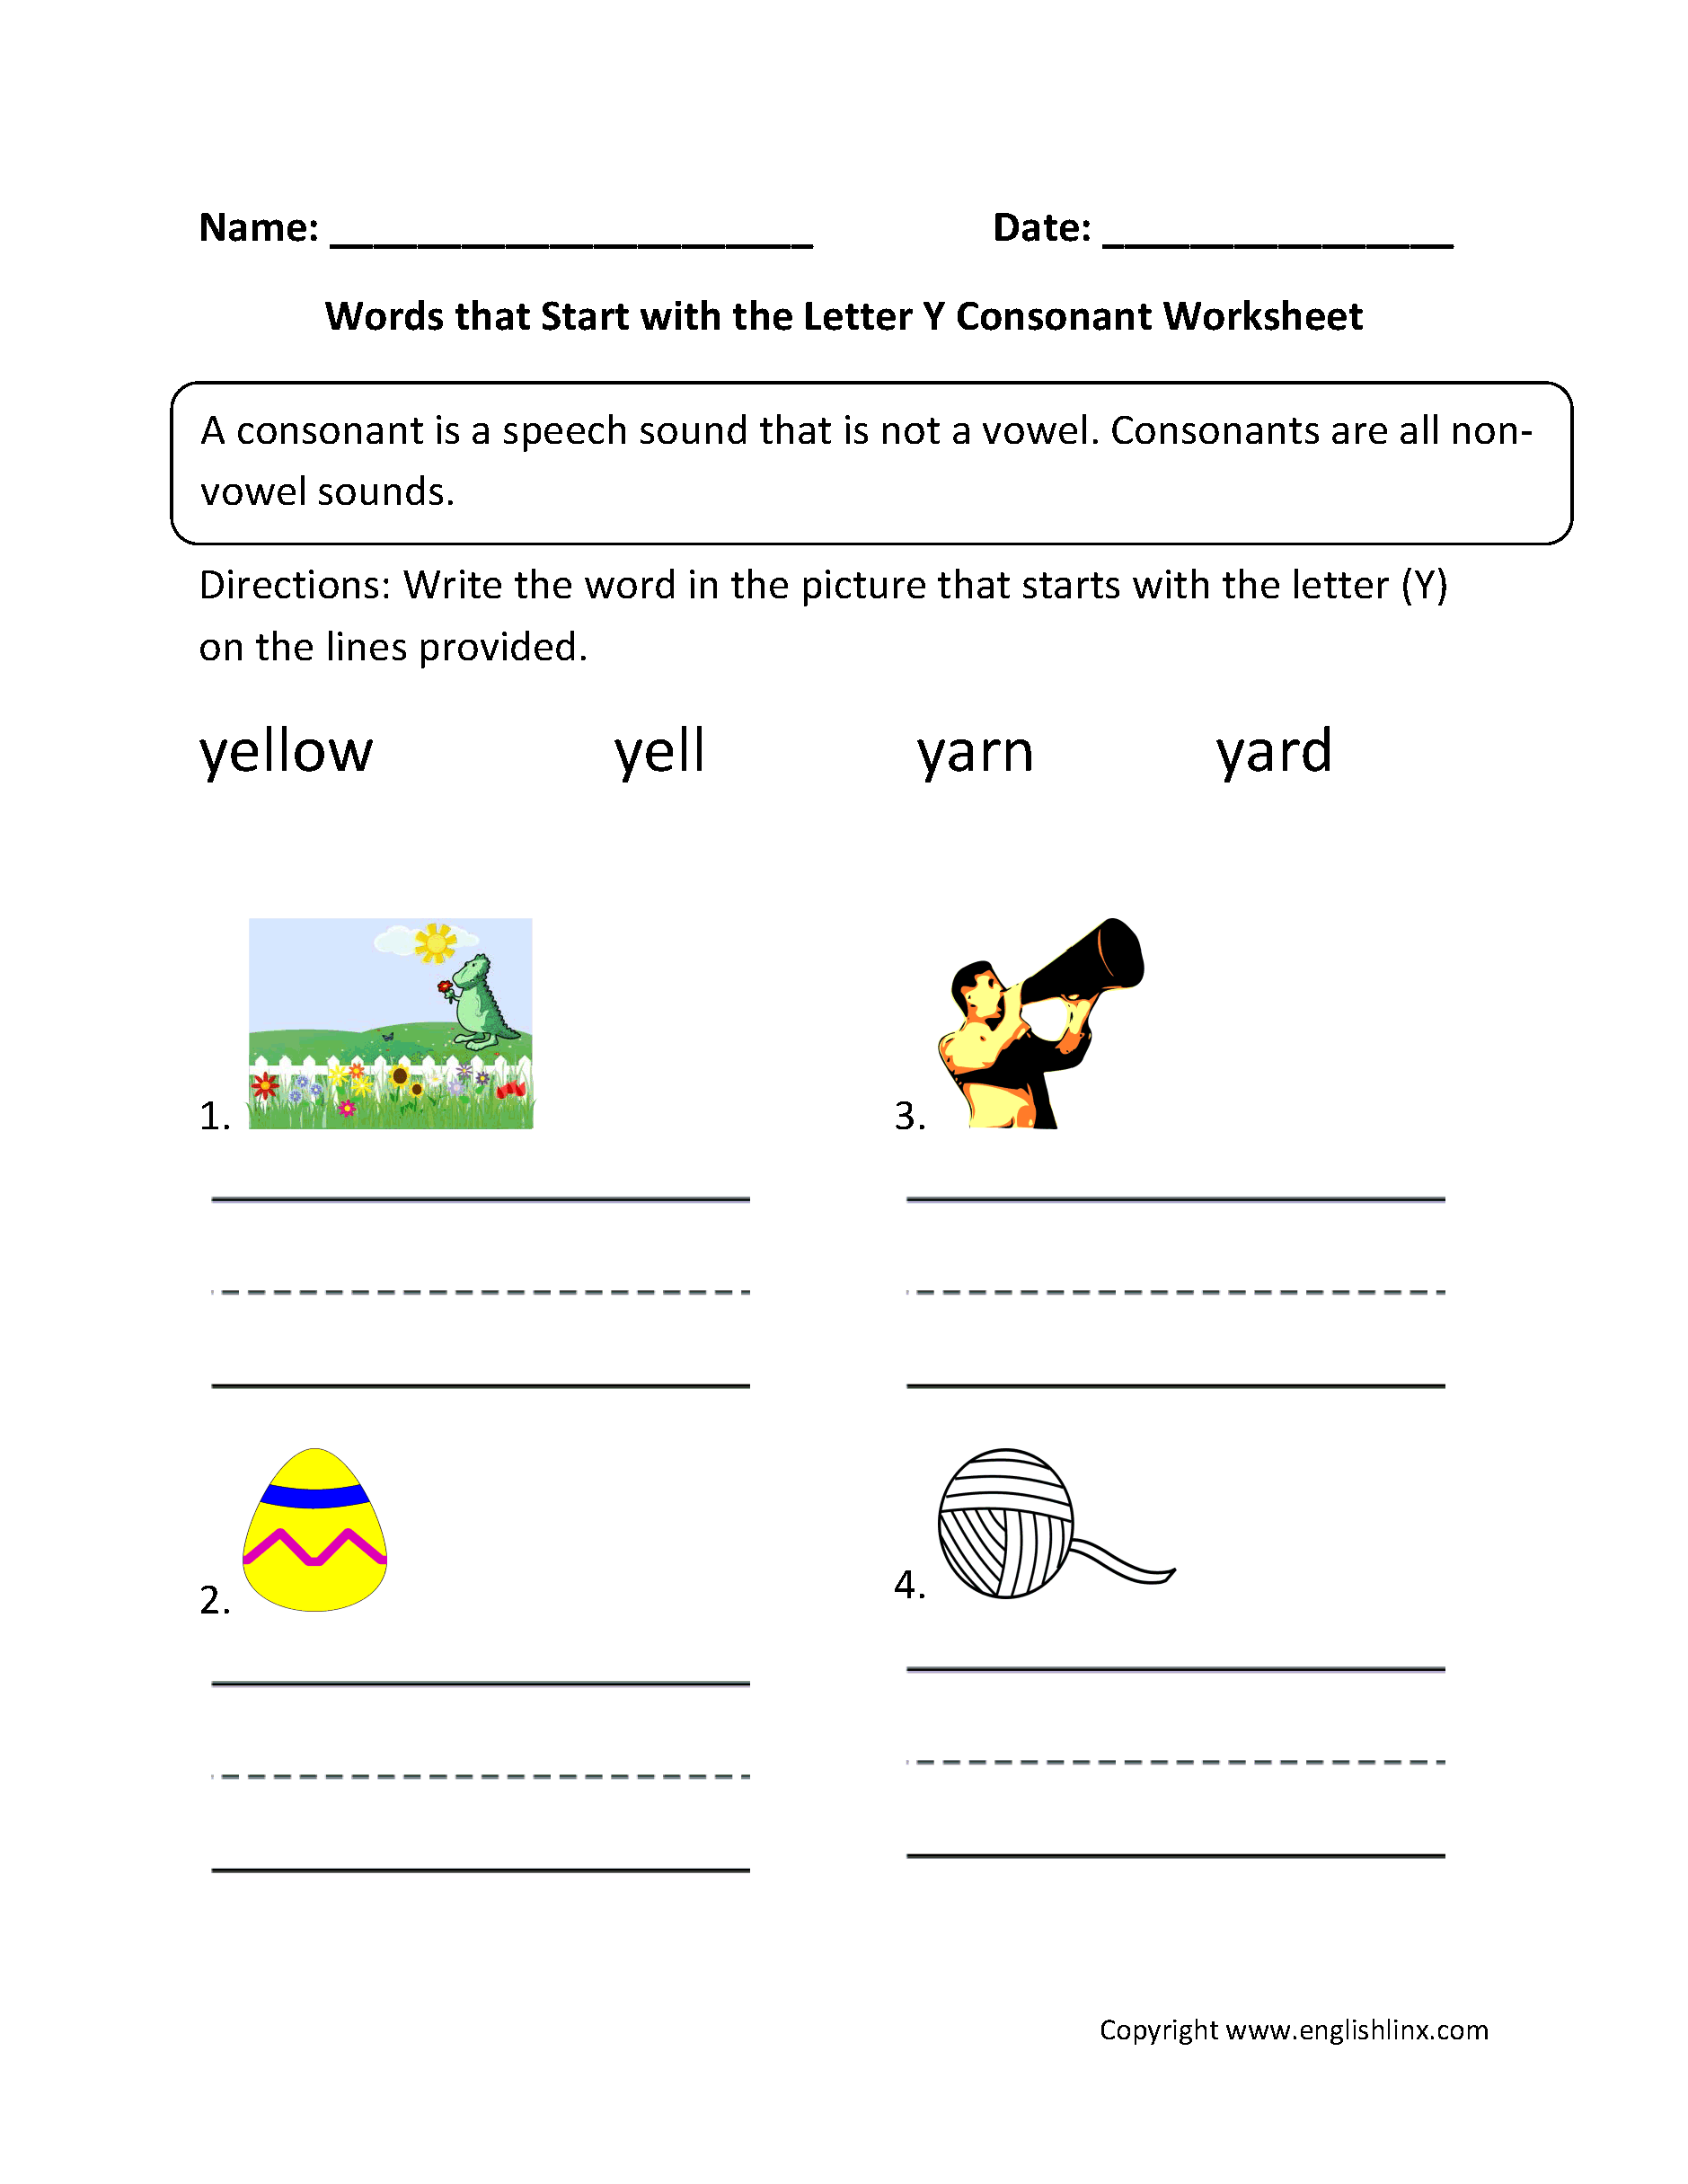 Y as a Vowel Worksheet for 1st - 2nd Grade | Lesson Planet